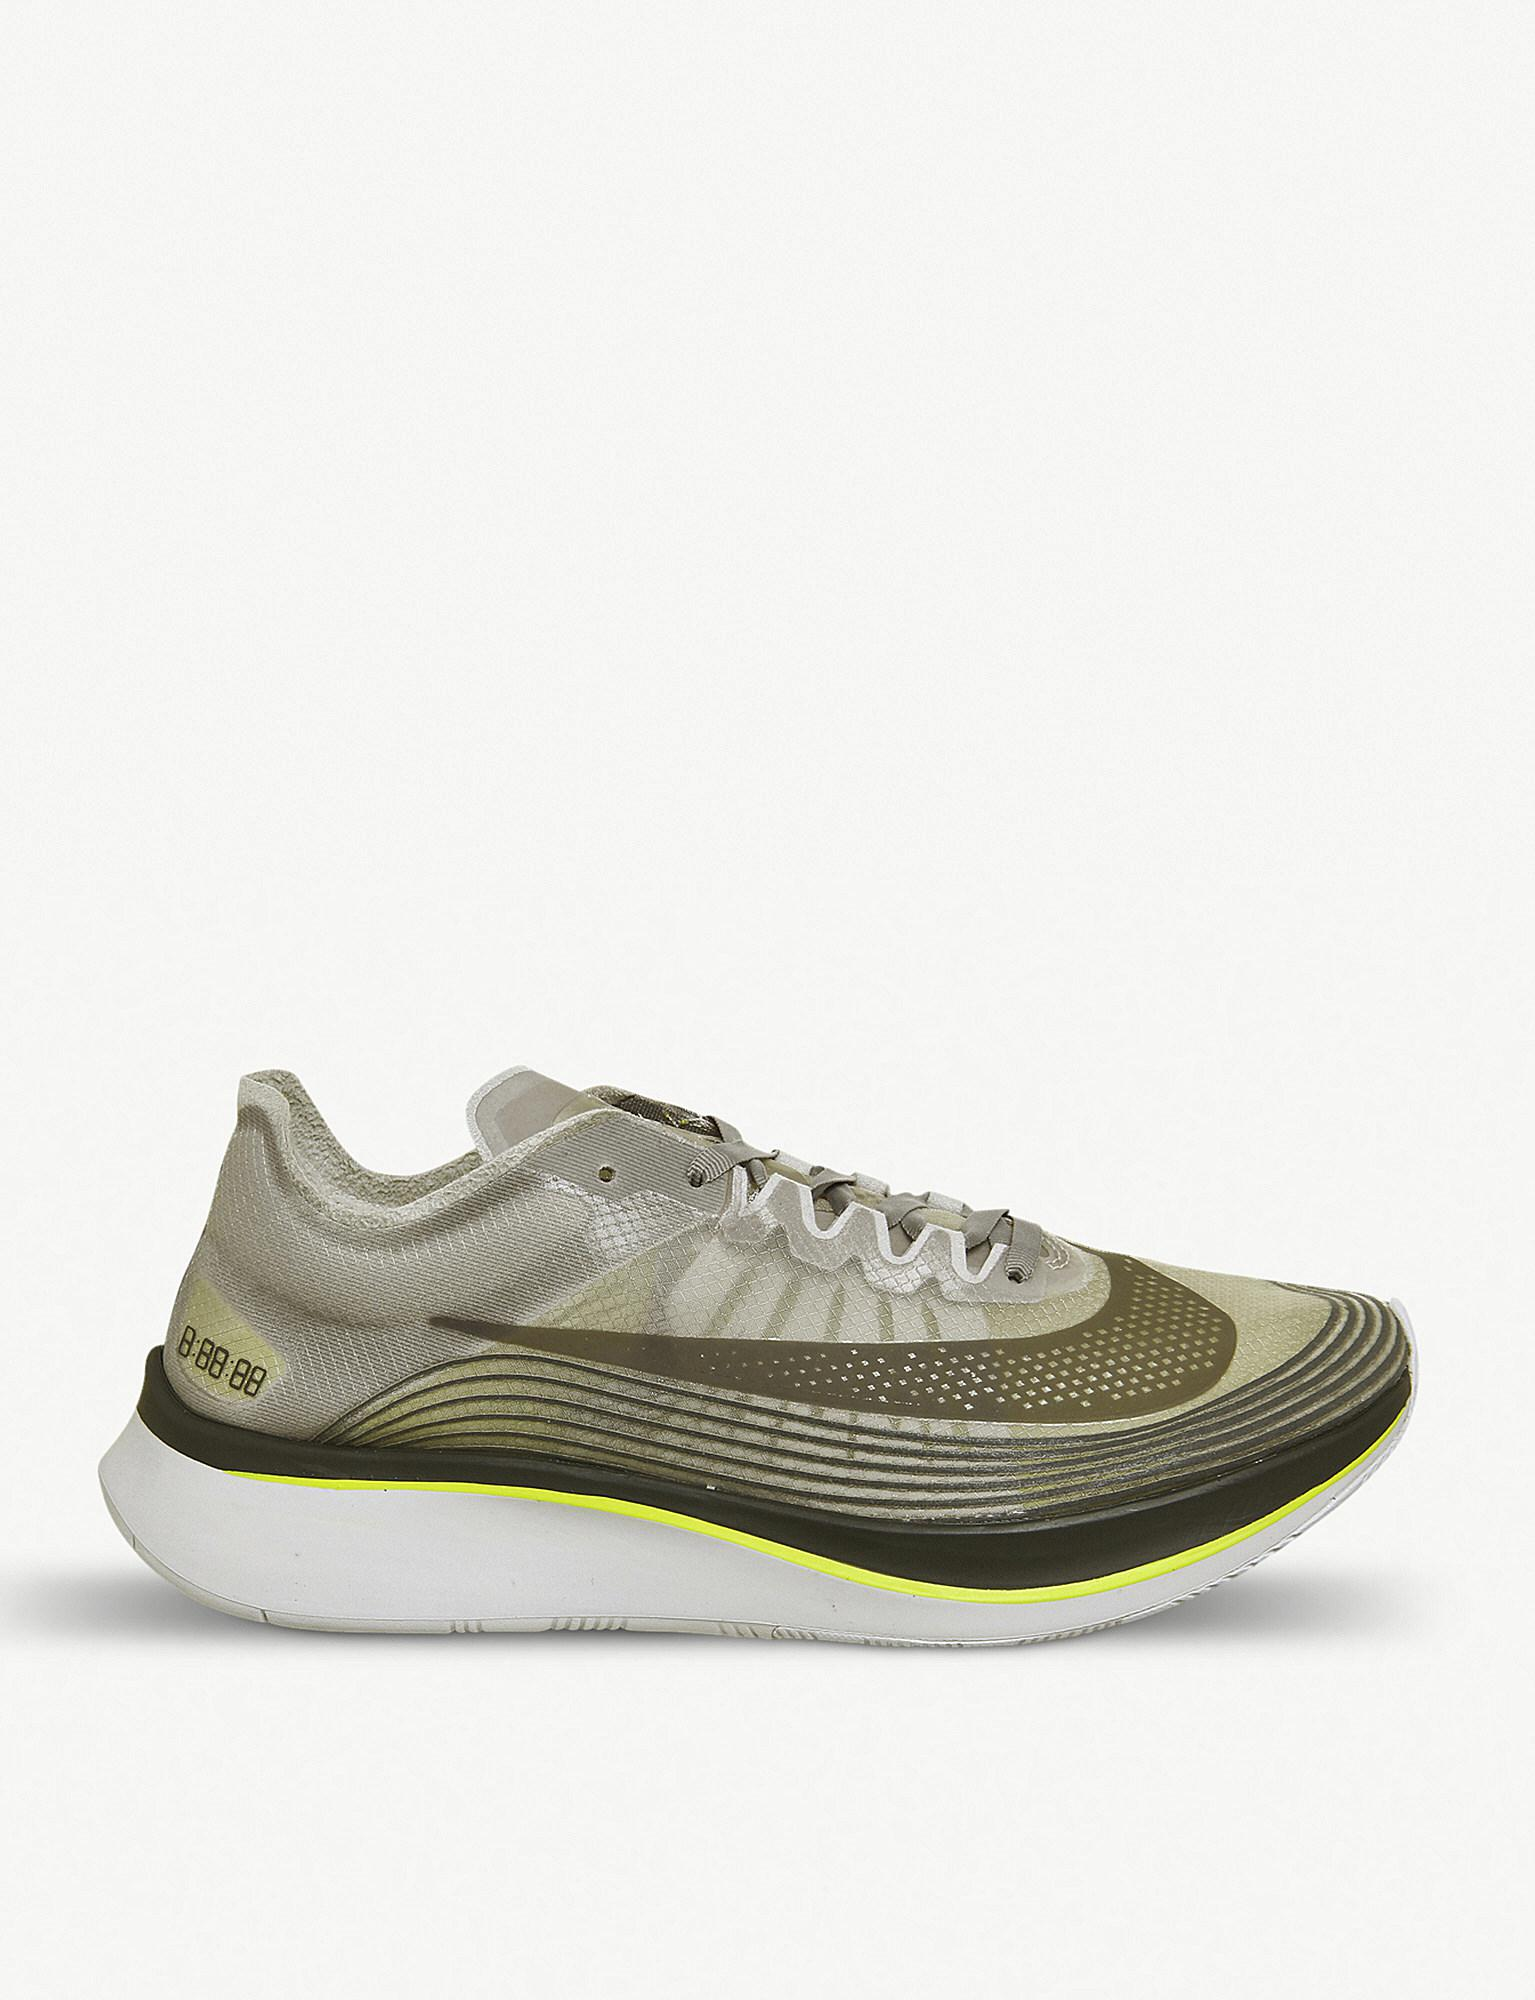 check out 9c8d1 faedd Nike. Mens Green Zoom Fly ...